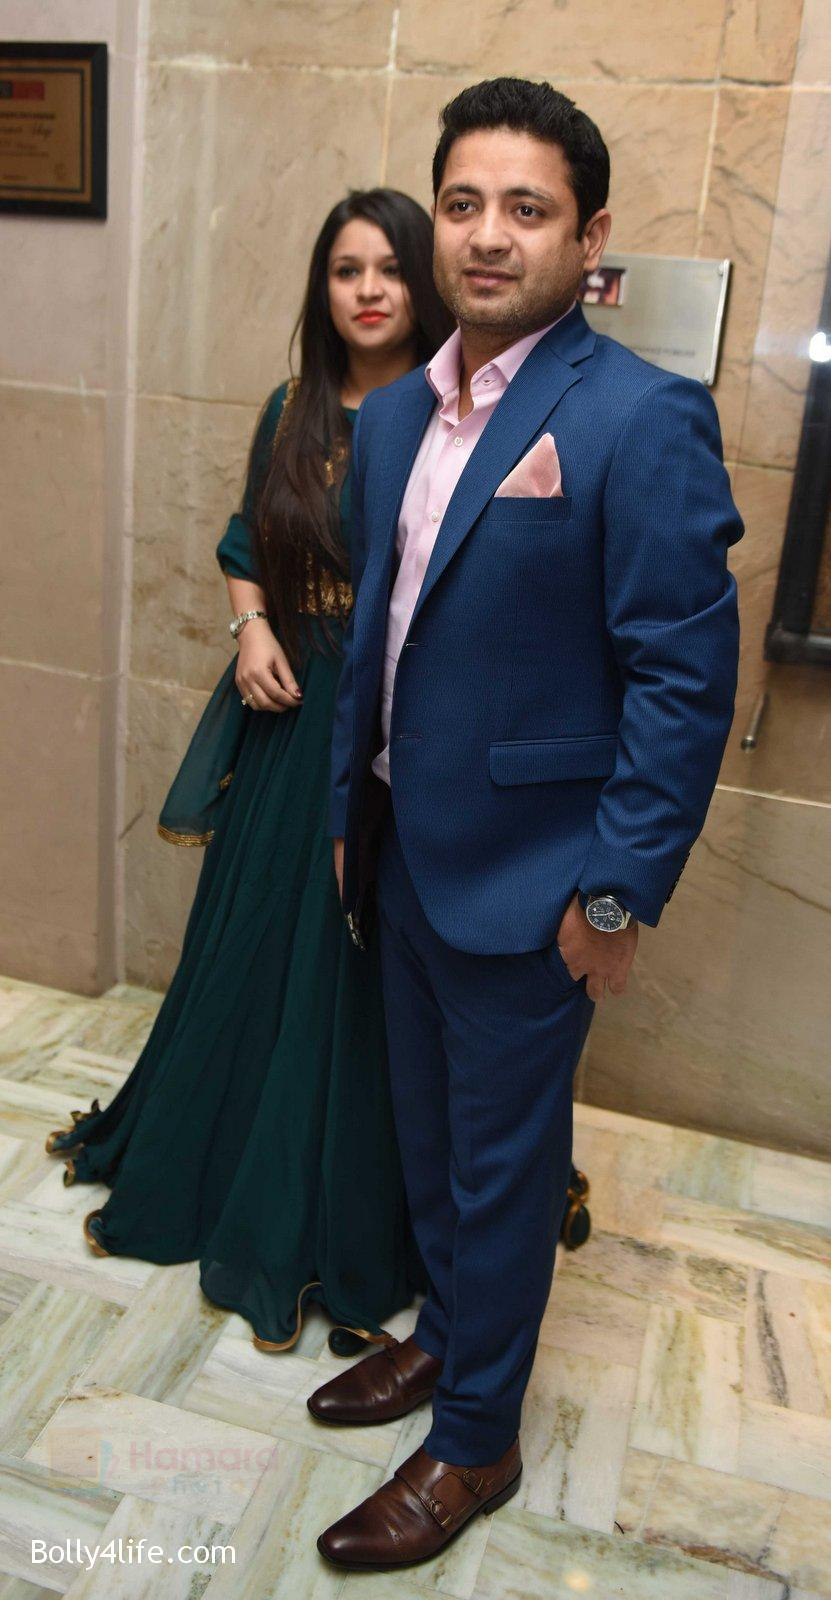 Piyush-Chawla-with-wife-at-Yuvraj-Singh-and-Hazel-Keech-Wedding-Reception-on-7th-Dec-2016.jpg